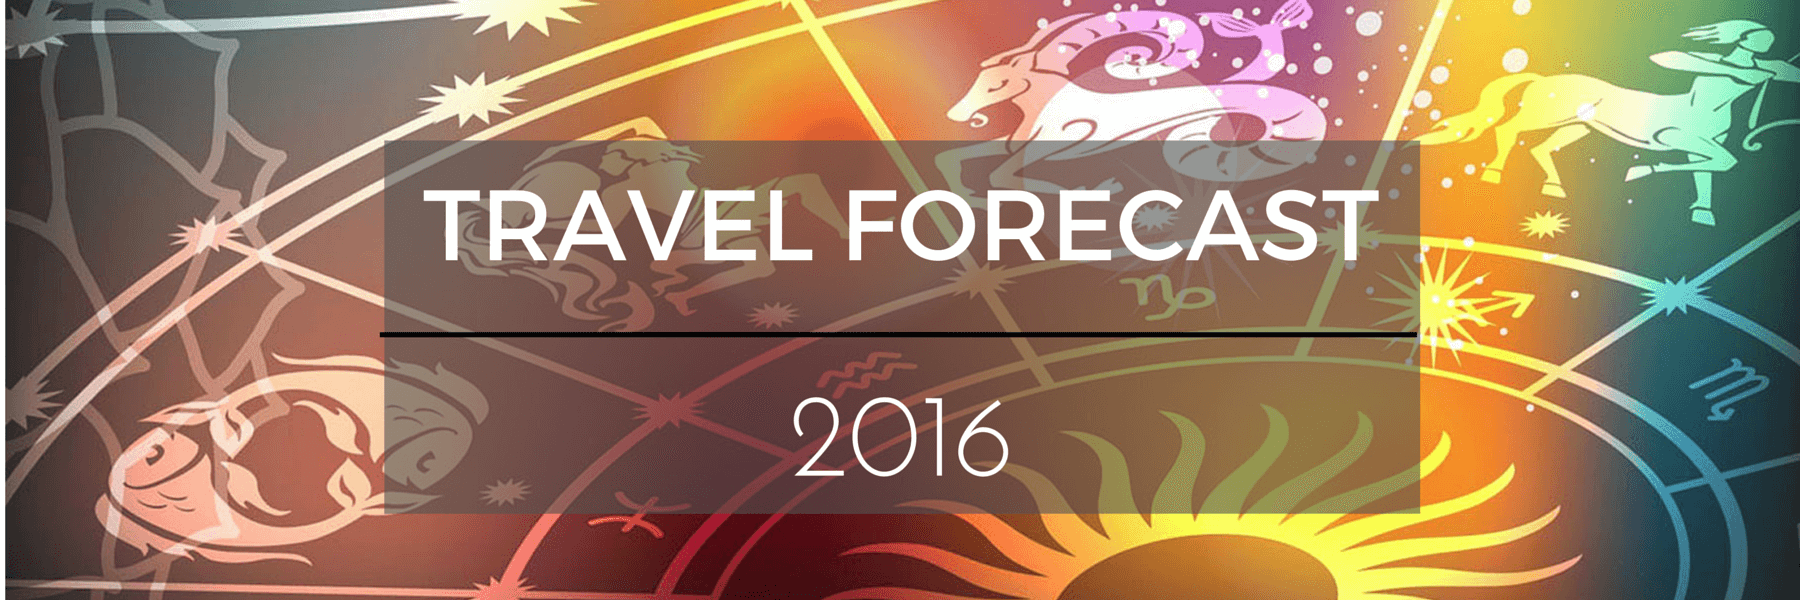 Travel Forecast